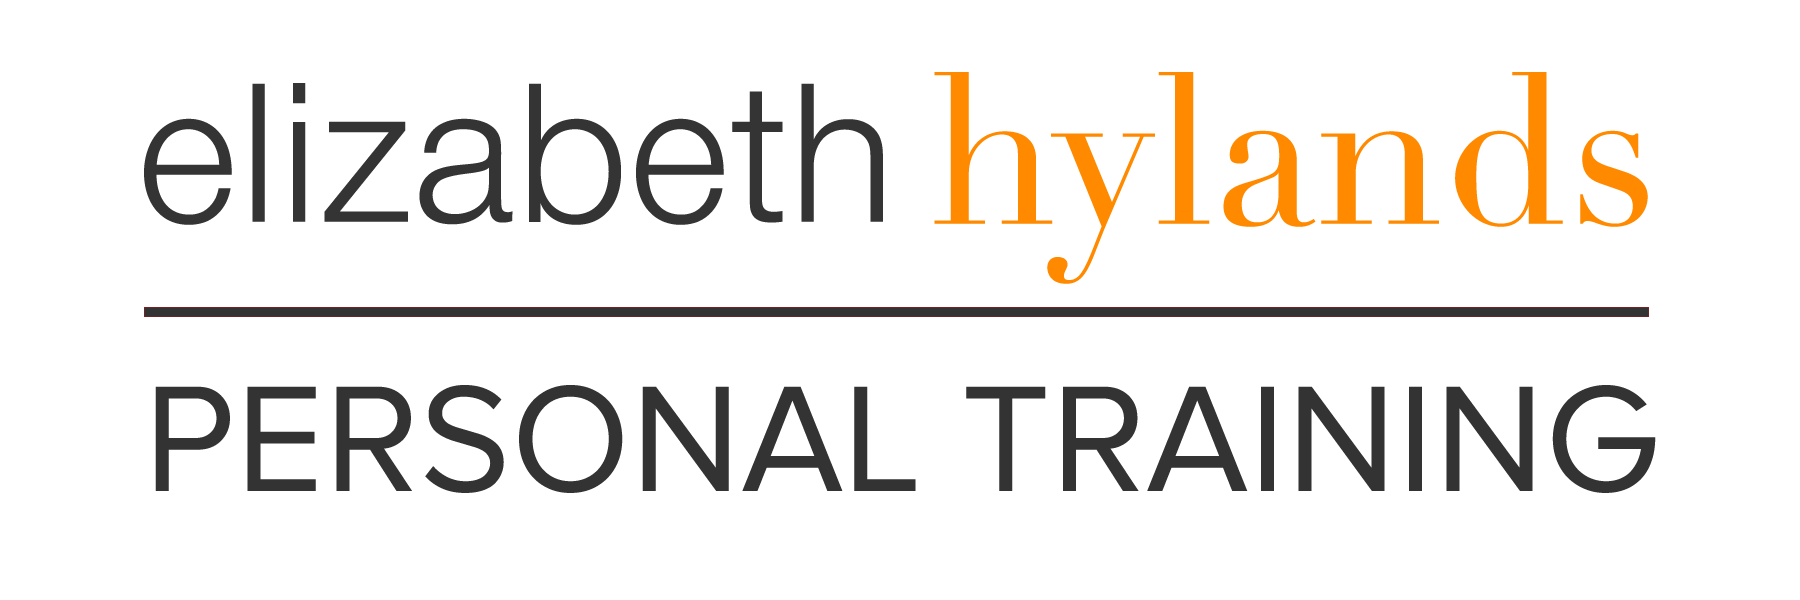 Elizabeth Hylands Personal Training